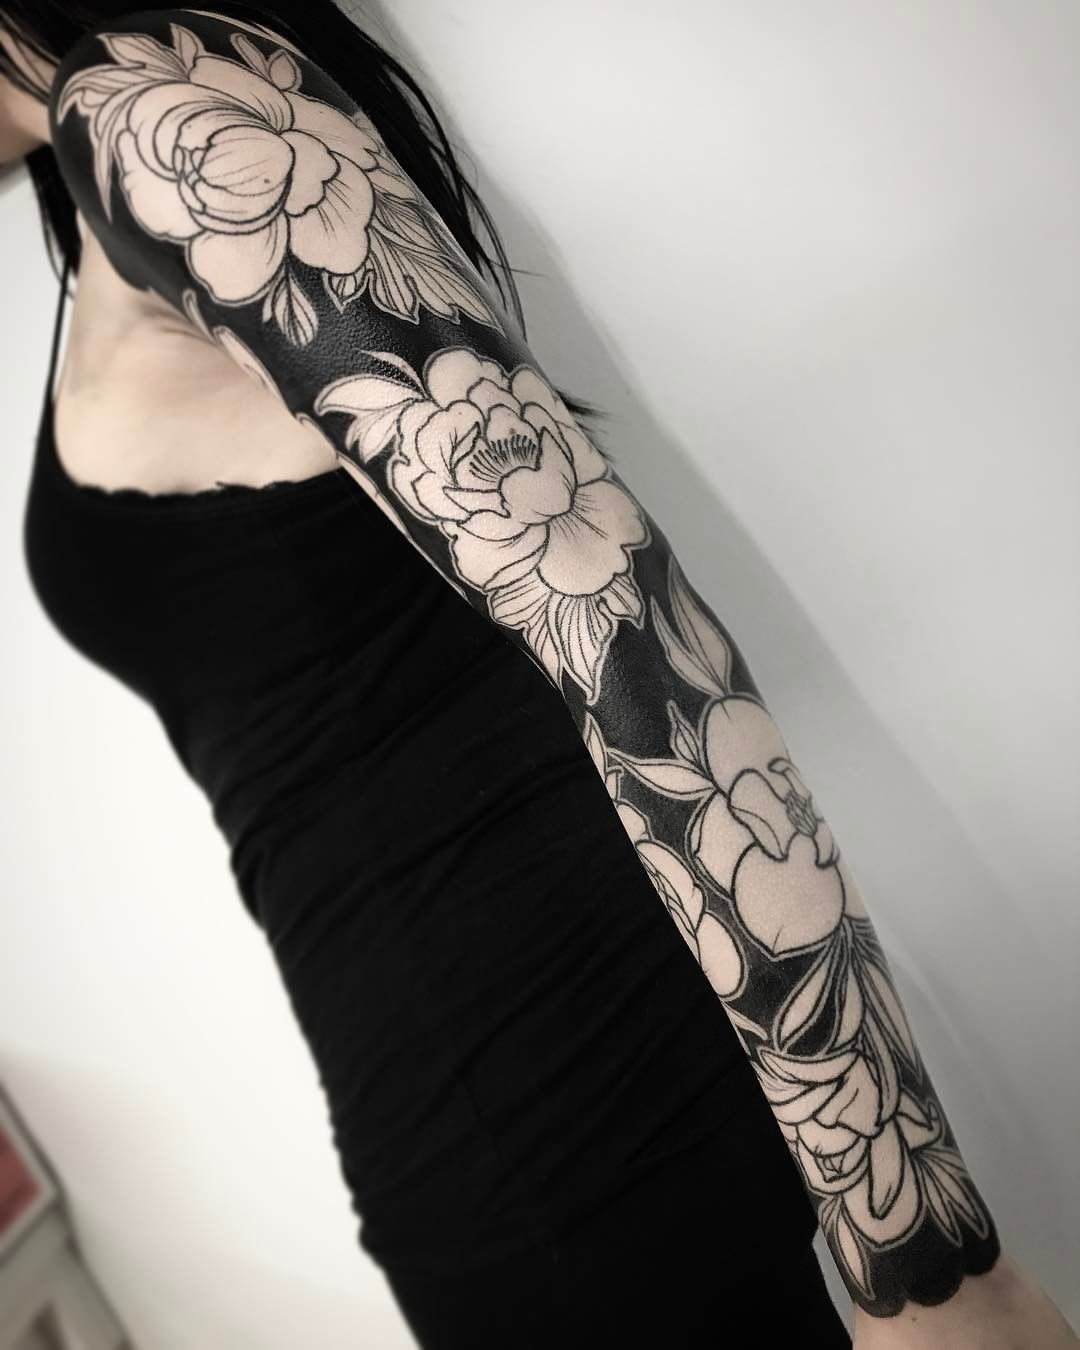 6 550 likes 11 comments sullen art collective for Tattoo spalla anteriore